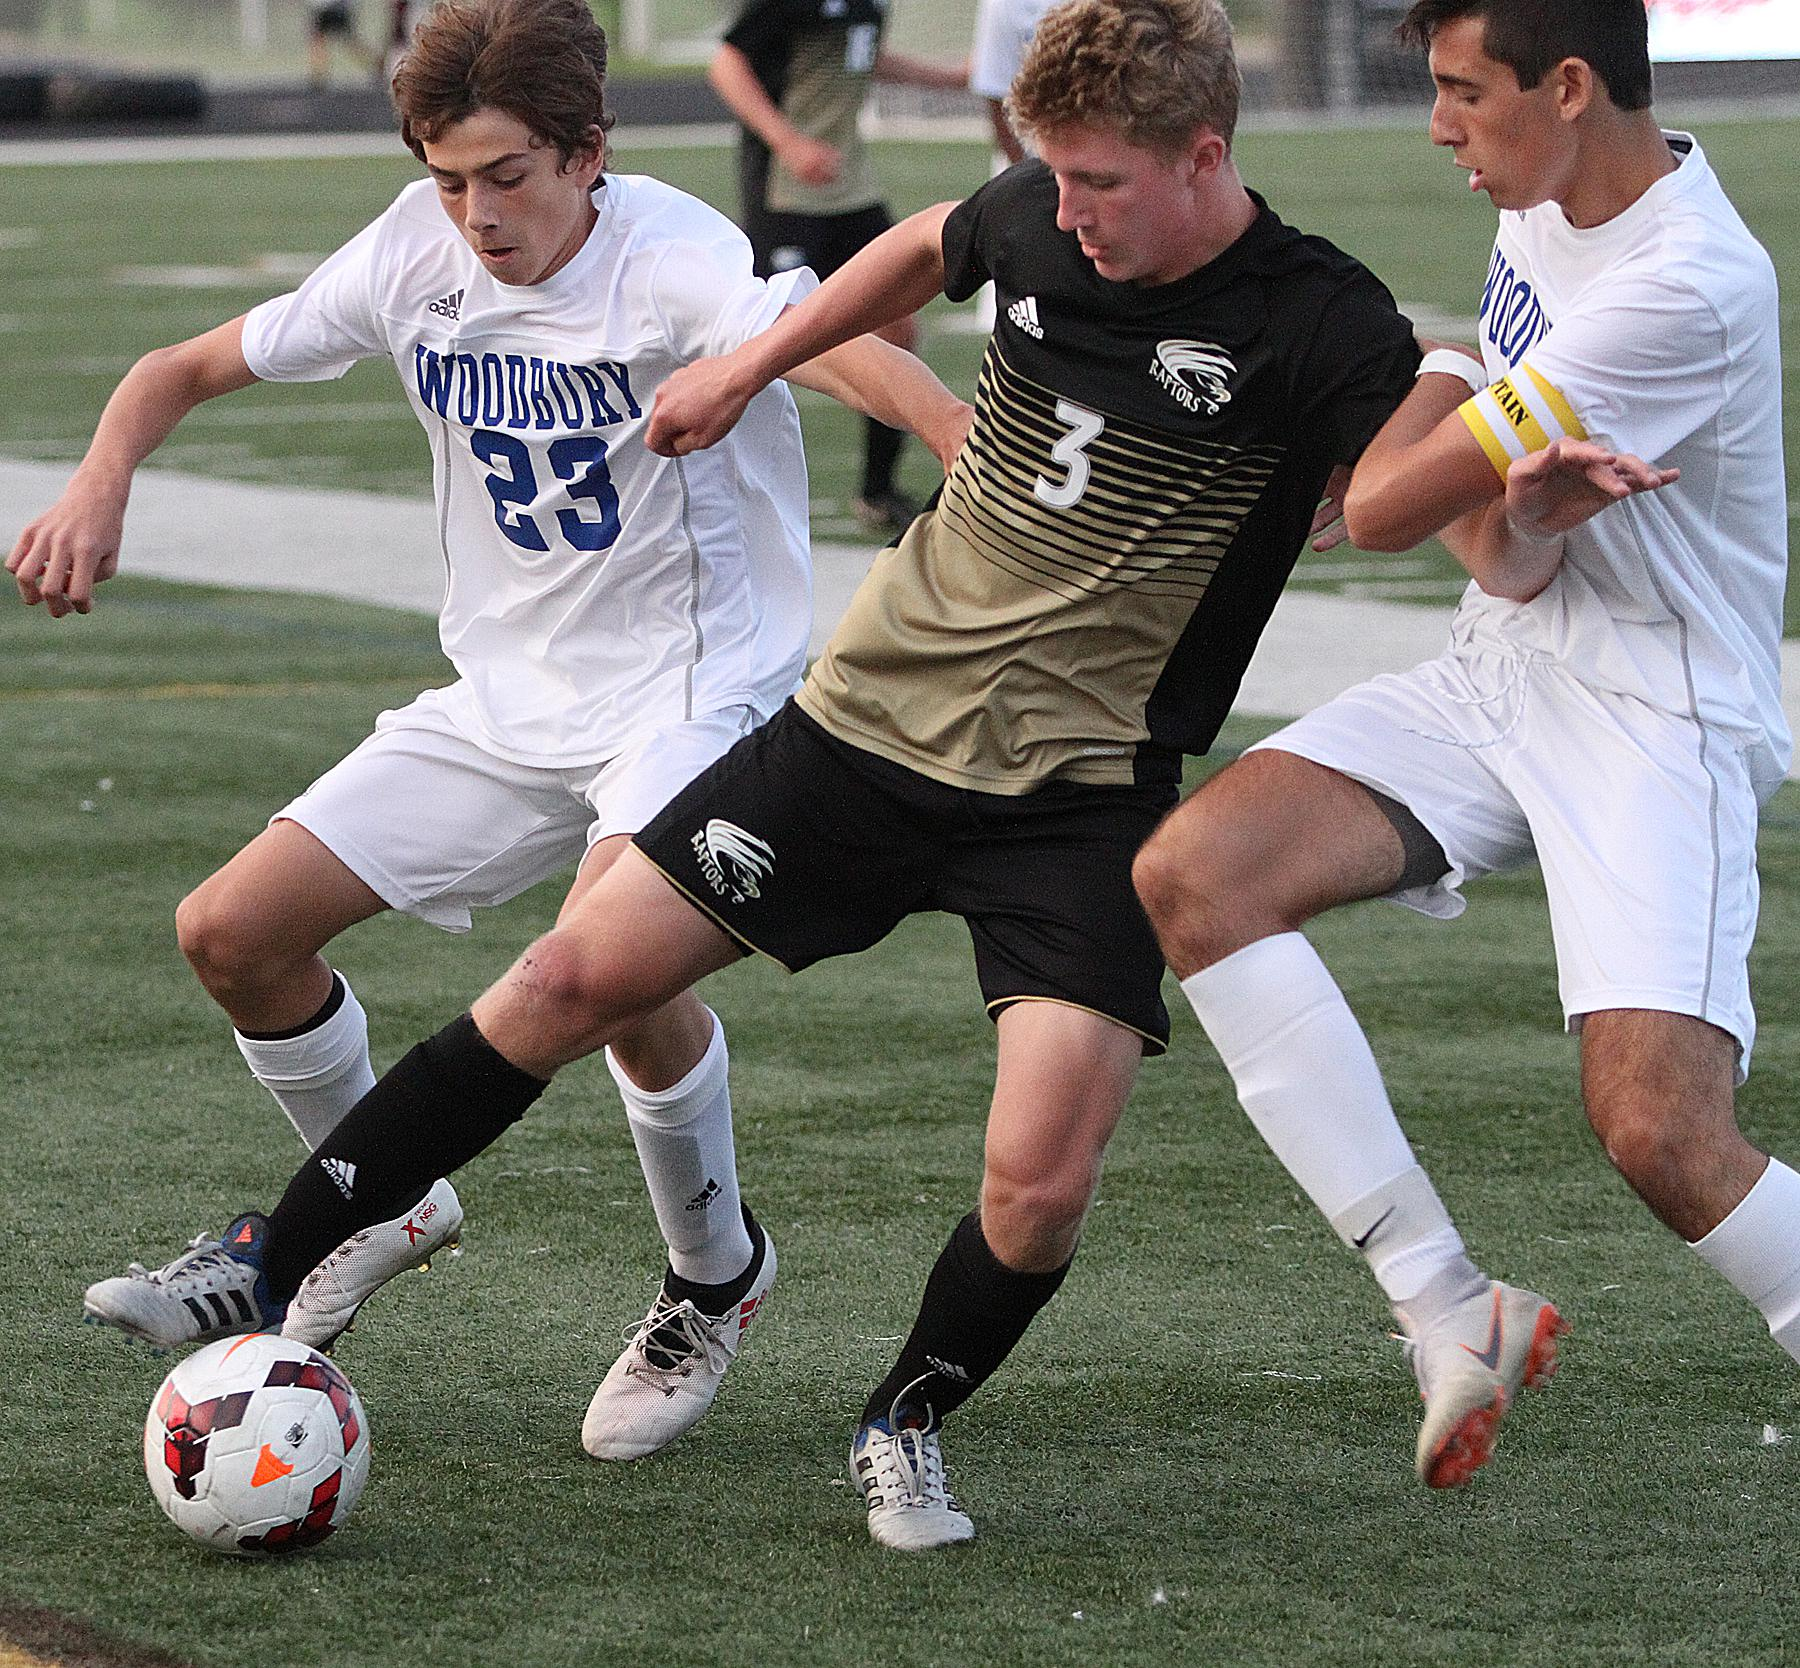 East Ridge junior defender Reese Dodd fights for control of the ball near the sideline with Woodbury's Josh Miller (right) and Devin Padelford in pursuit. Photo by Drew Herron, SportsEngine